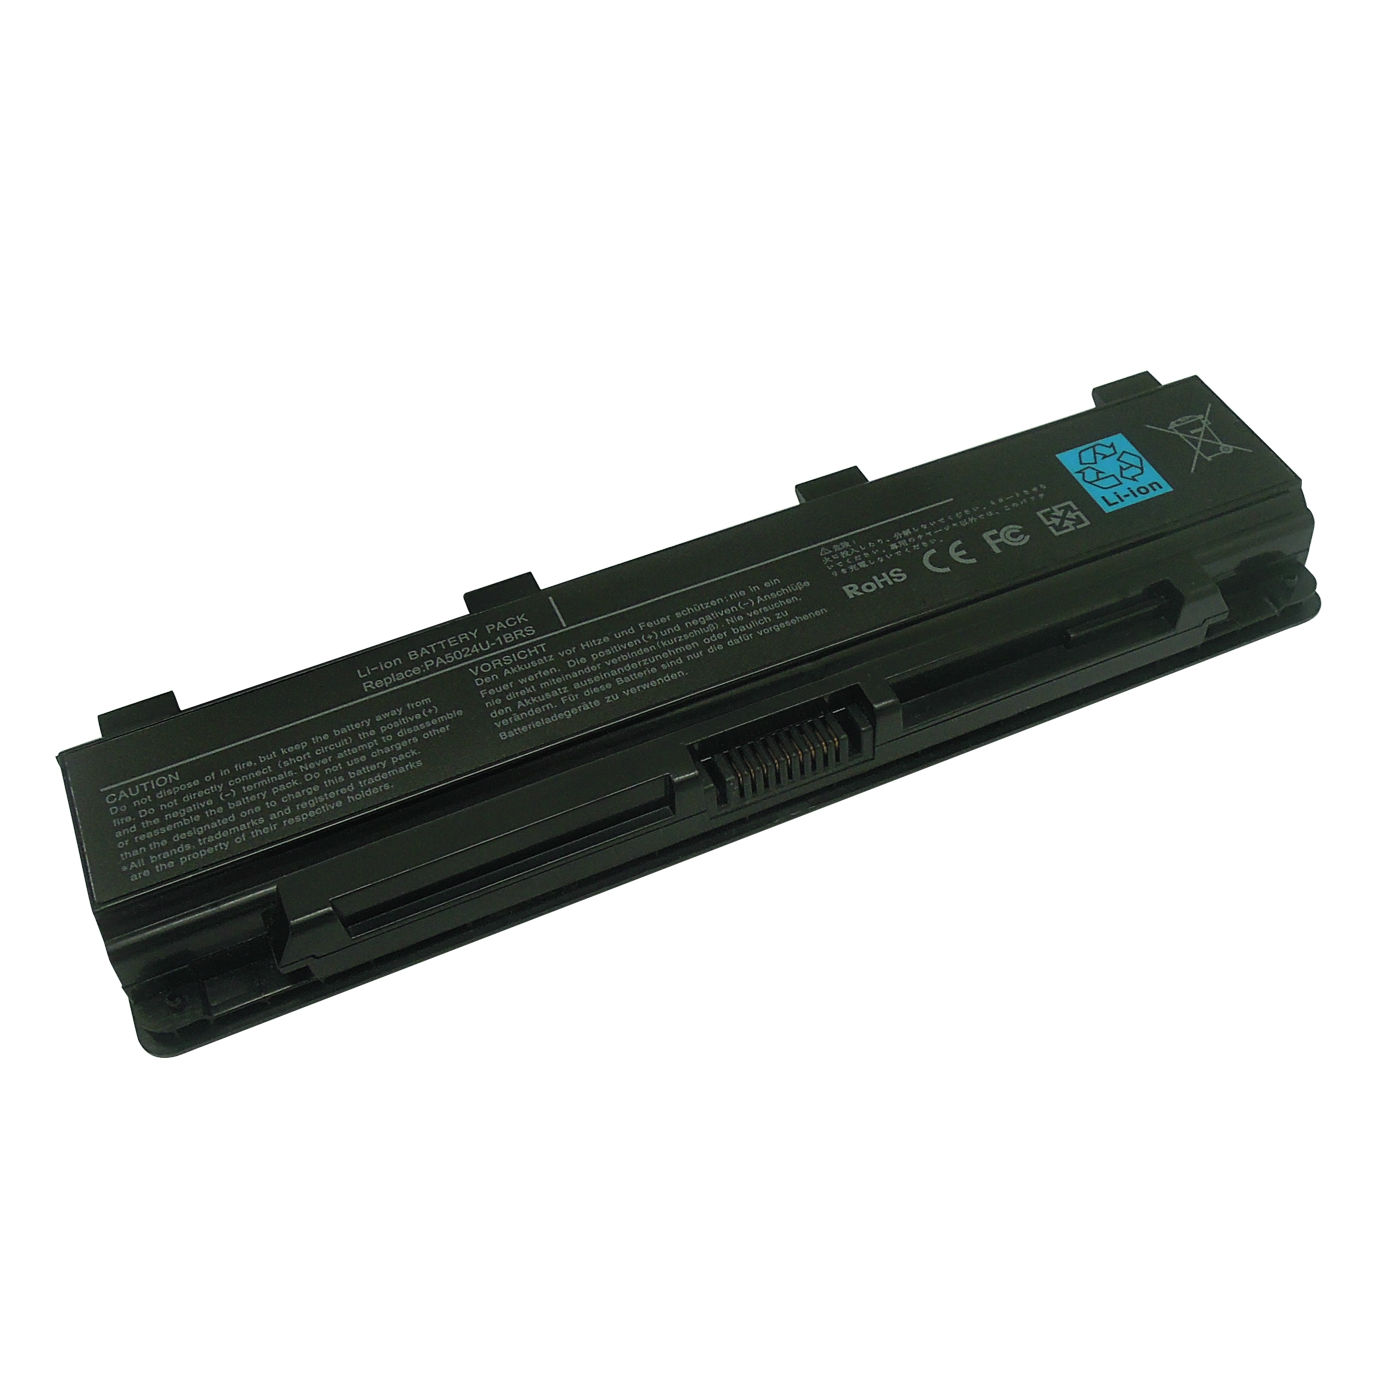 Superb Choice® 9-Cell Battery for TOSHIBA Satellite Pro M845 - image 1 of 1